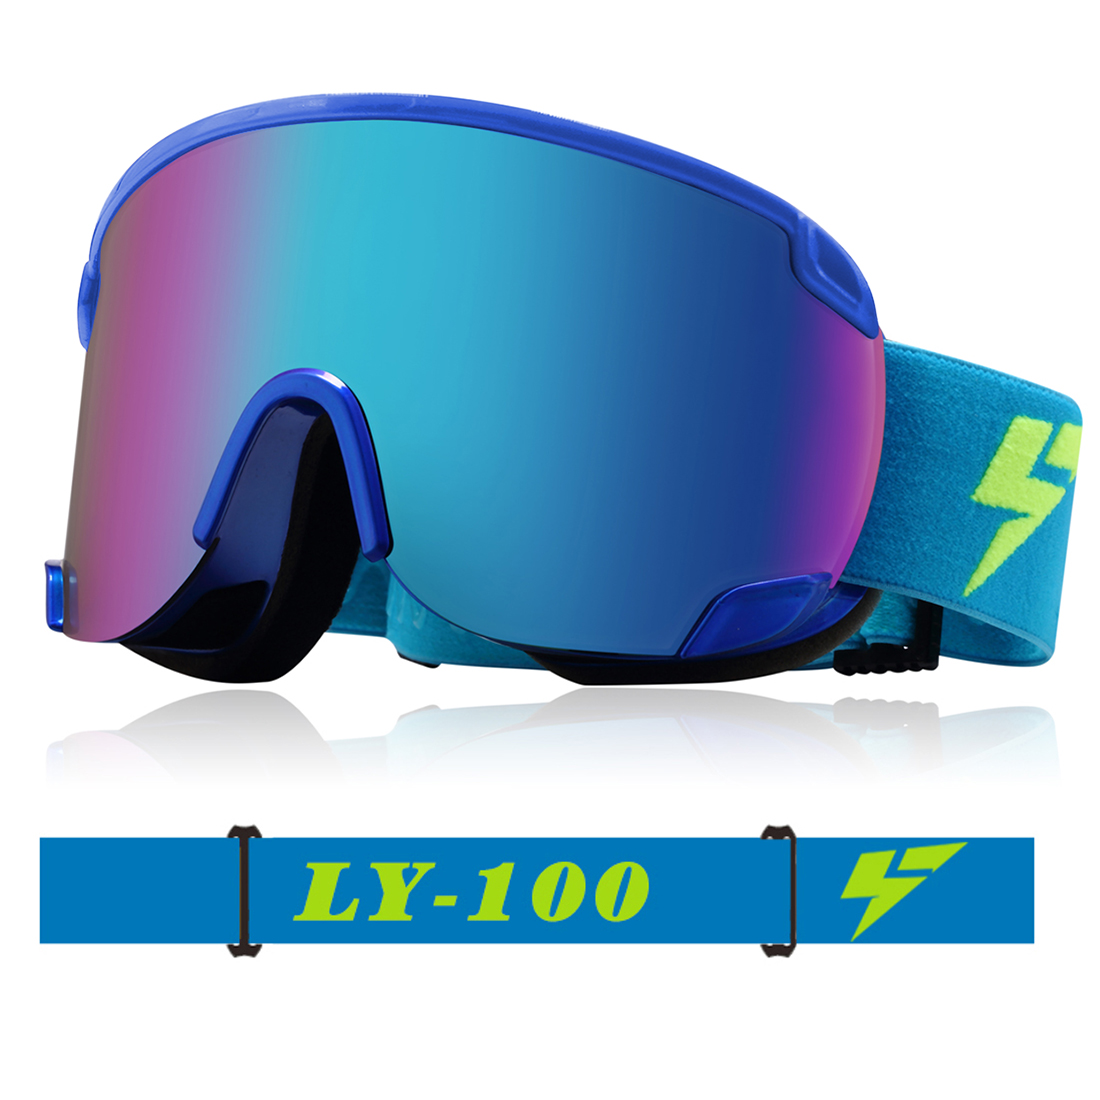 Ski Snowmobile Snowboard Goggles OTG Anti-fog UV400 Protect Anti-slip BU for Women Men by